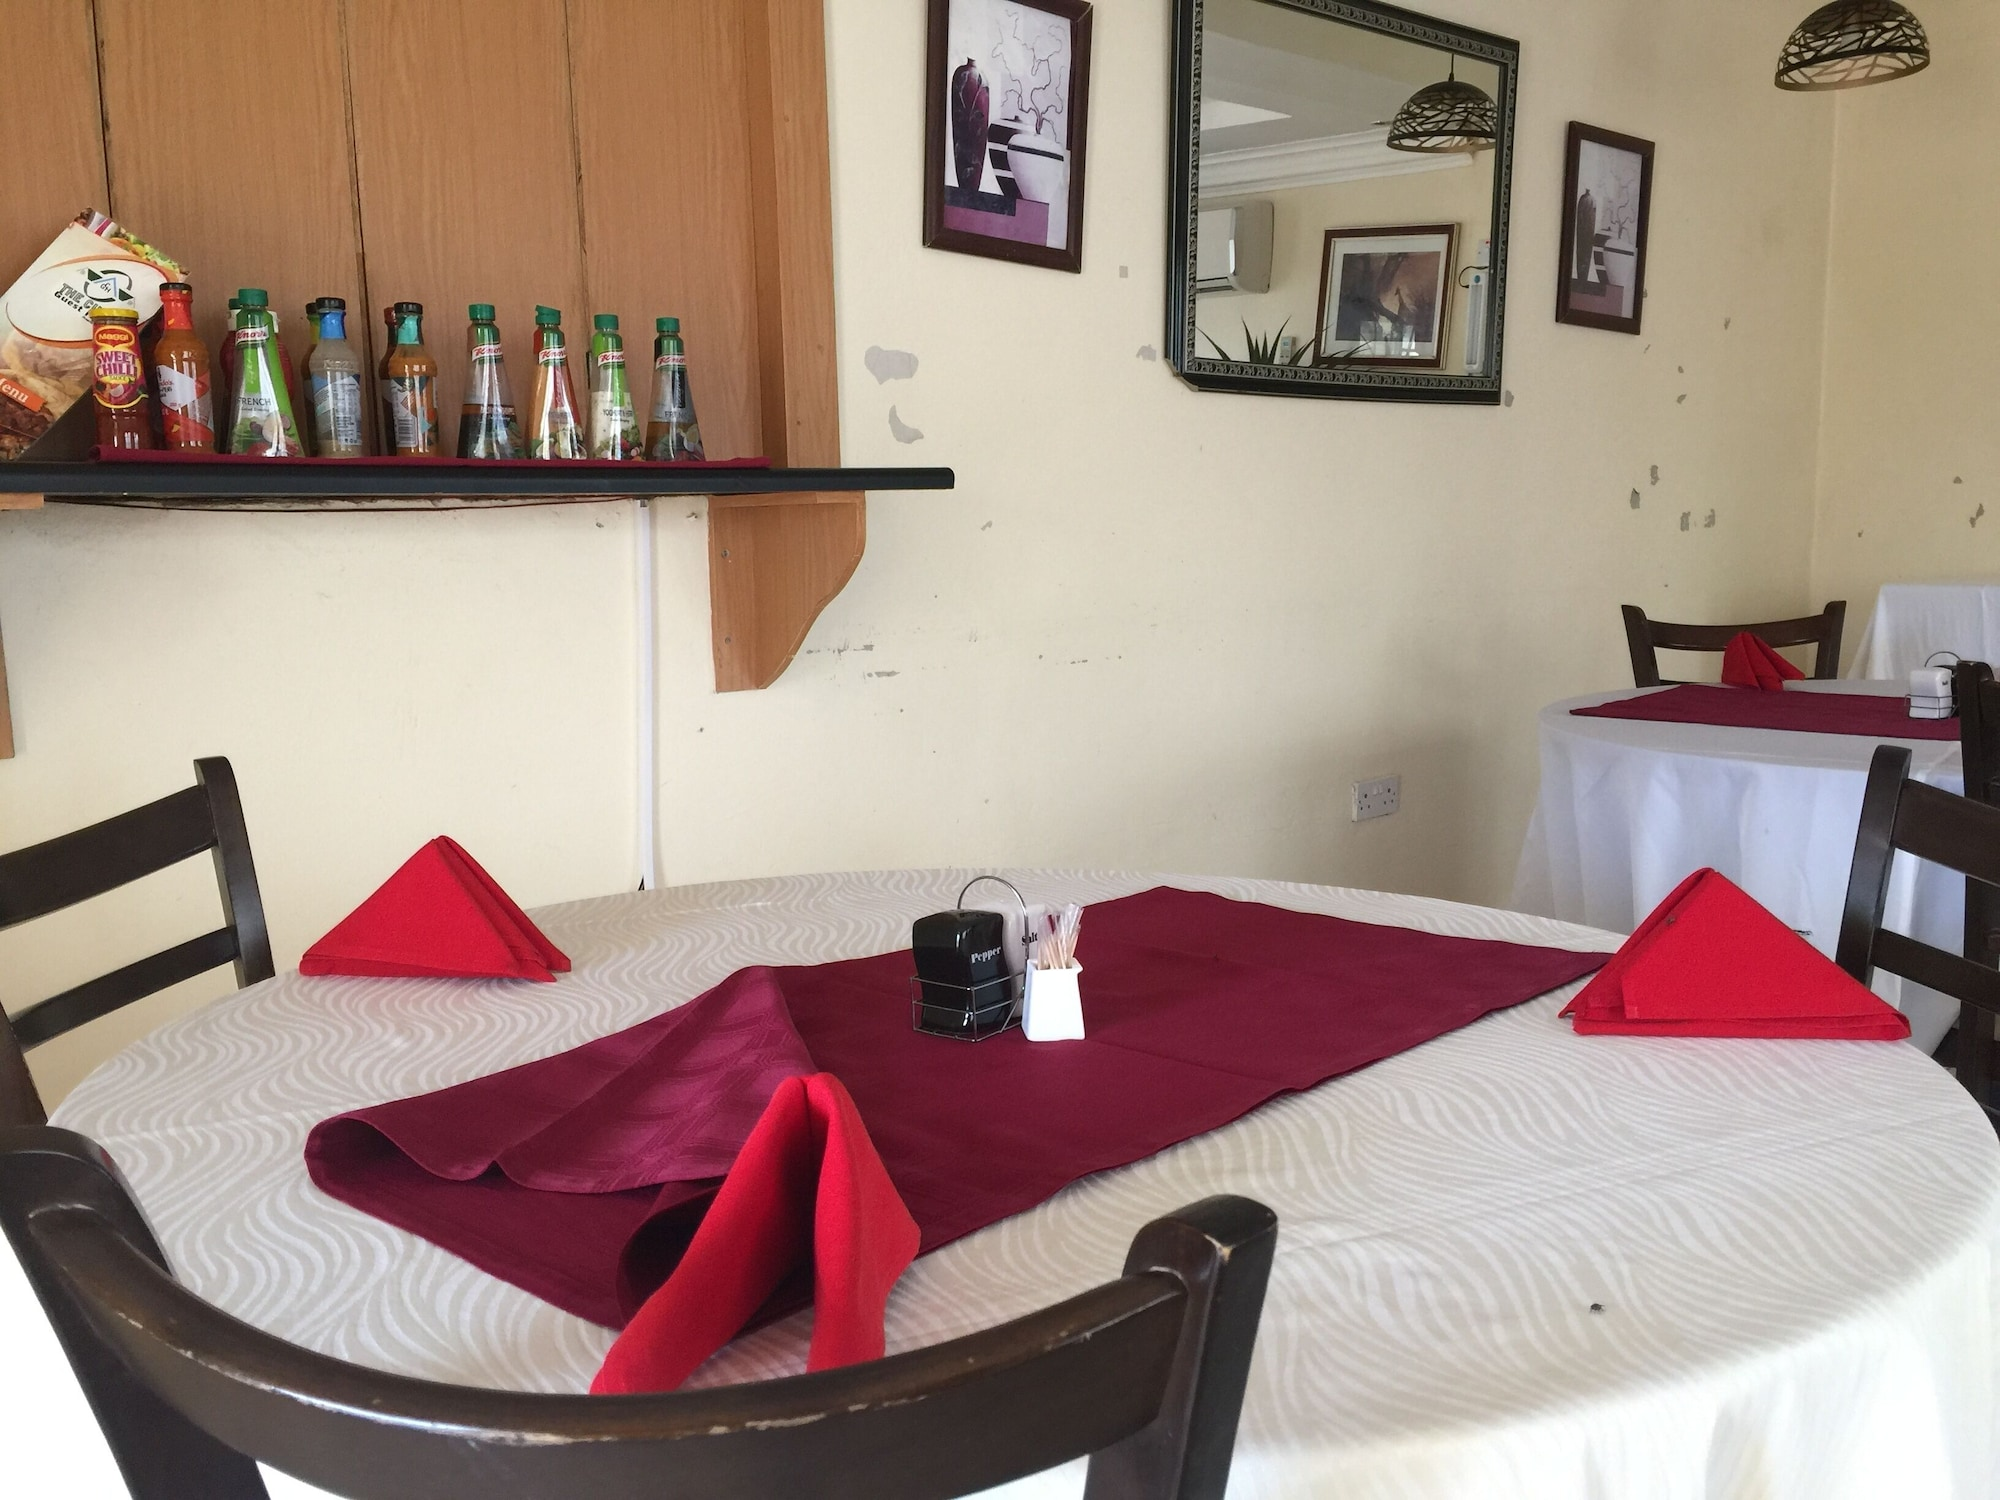 The Curve Guest House, Lethlakane